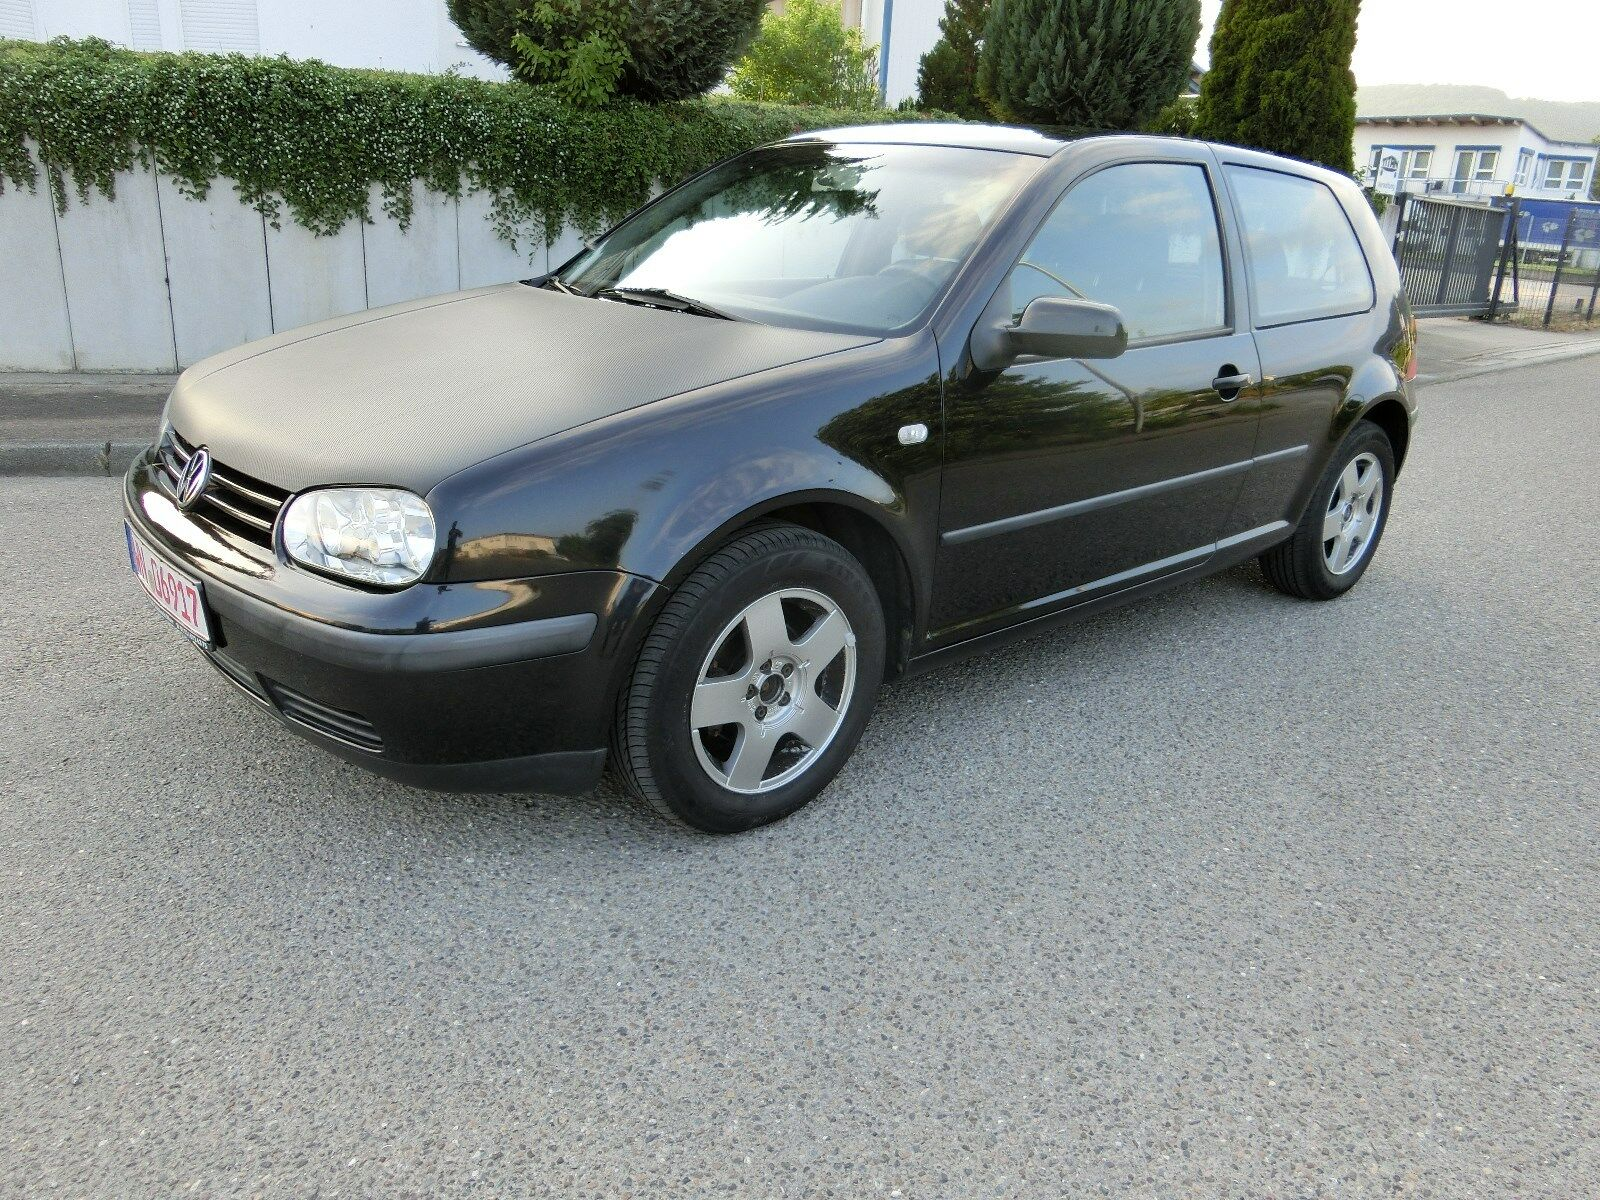 VW Golf 1.4 Edition * Klima * Tüv 05.2021 *